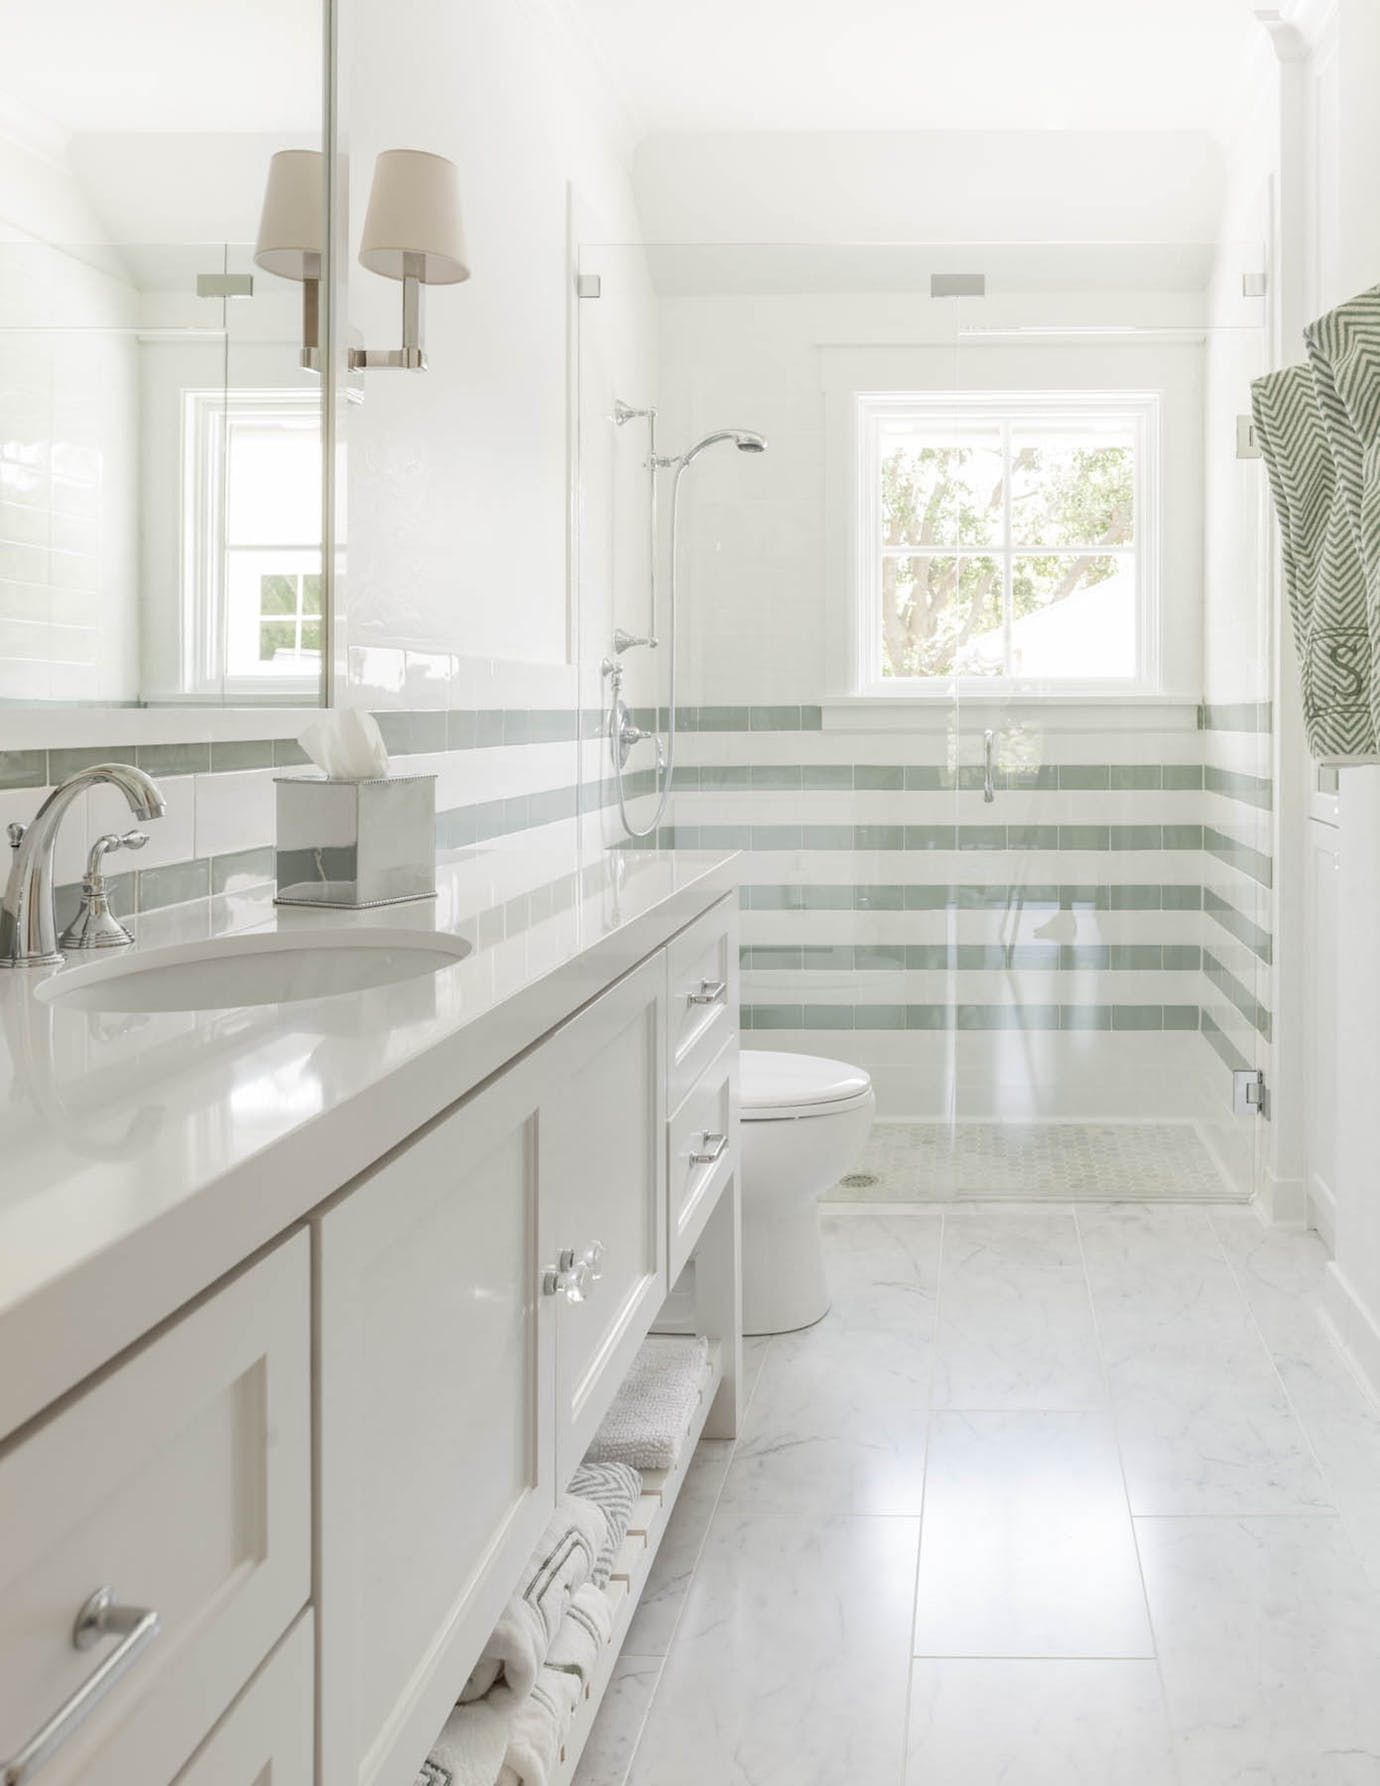 Parkchester Bath Transitional by Stocker Hoesterey Montenegro